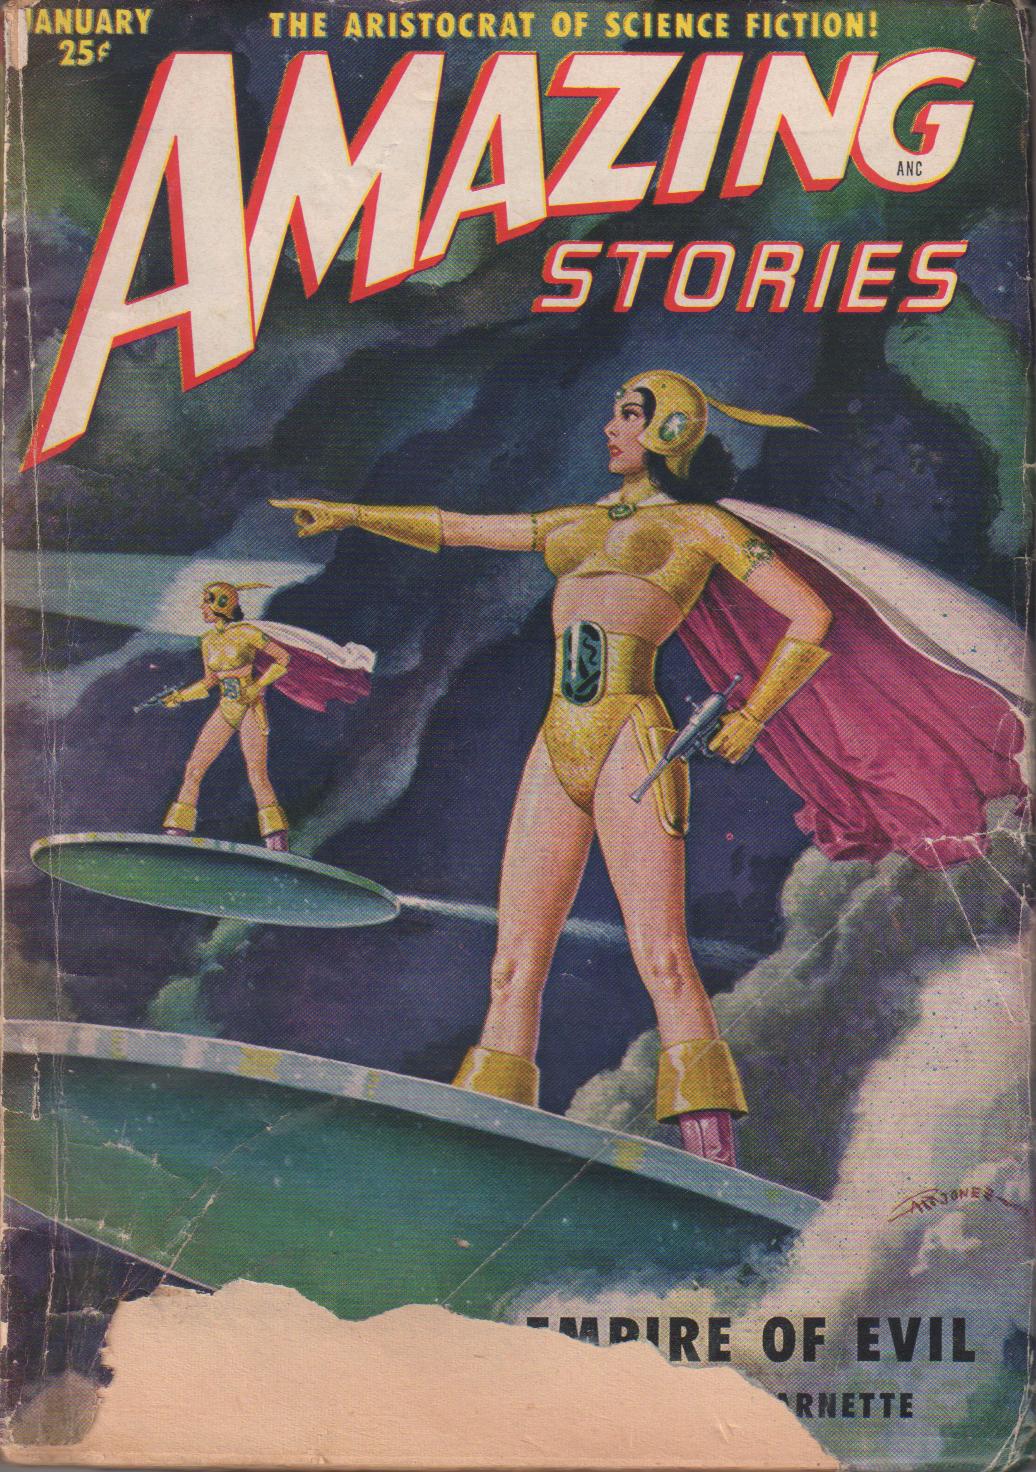 Image - Amazing Stories, January 1951